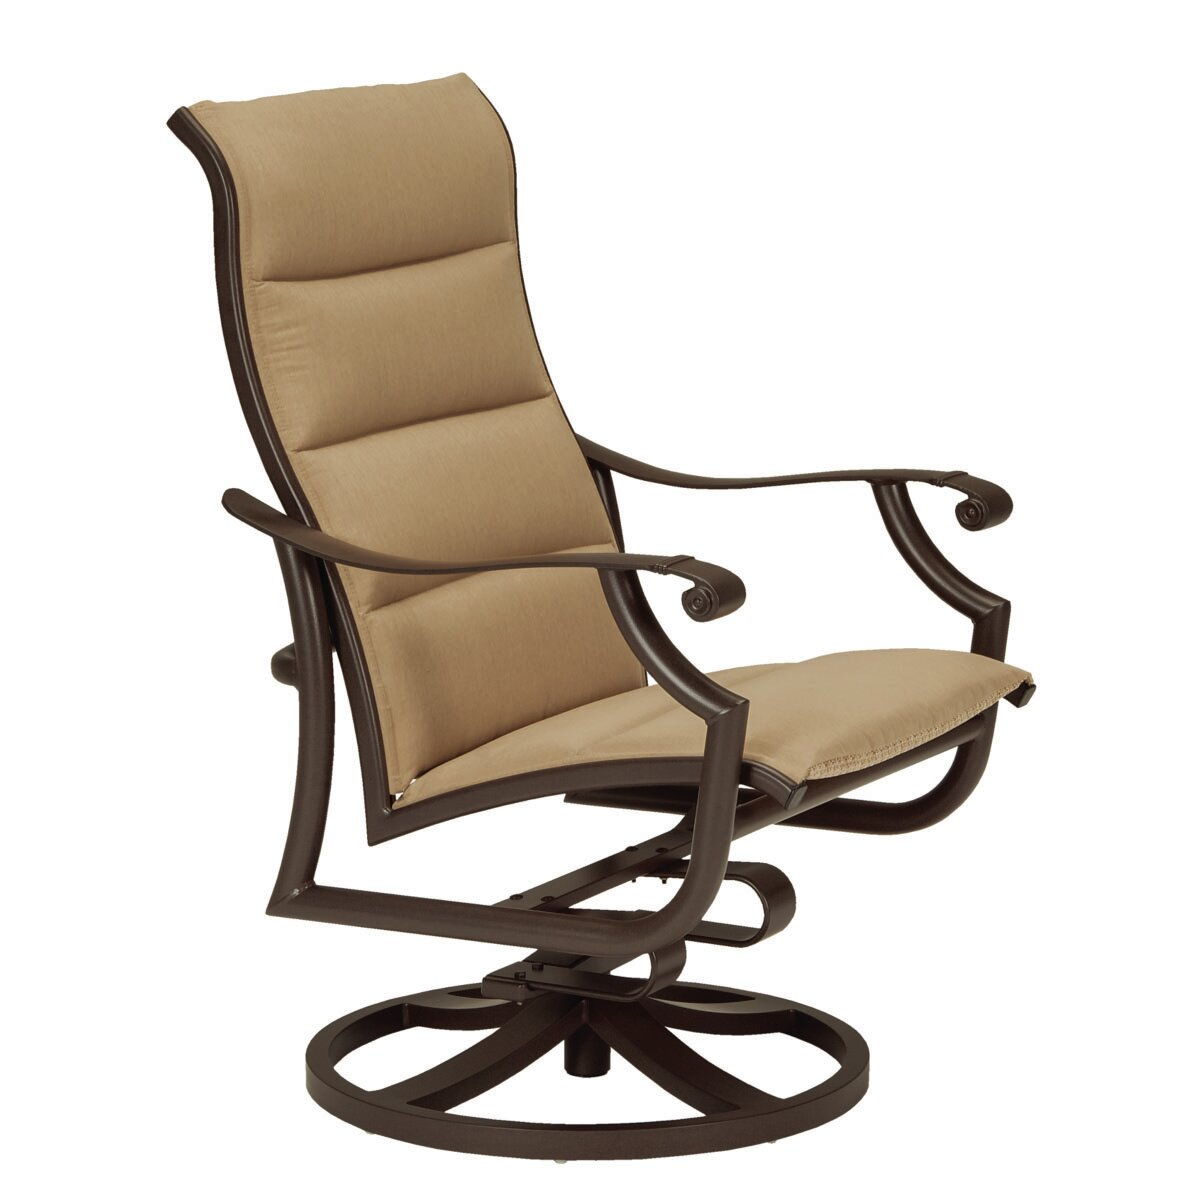 Montreux II Padded Sling Action Lounge Rocking Chair by Tropitone